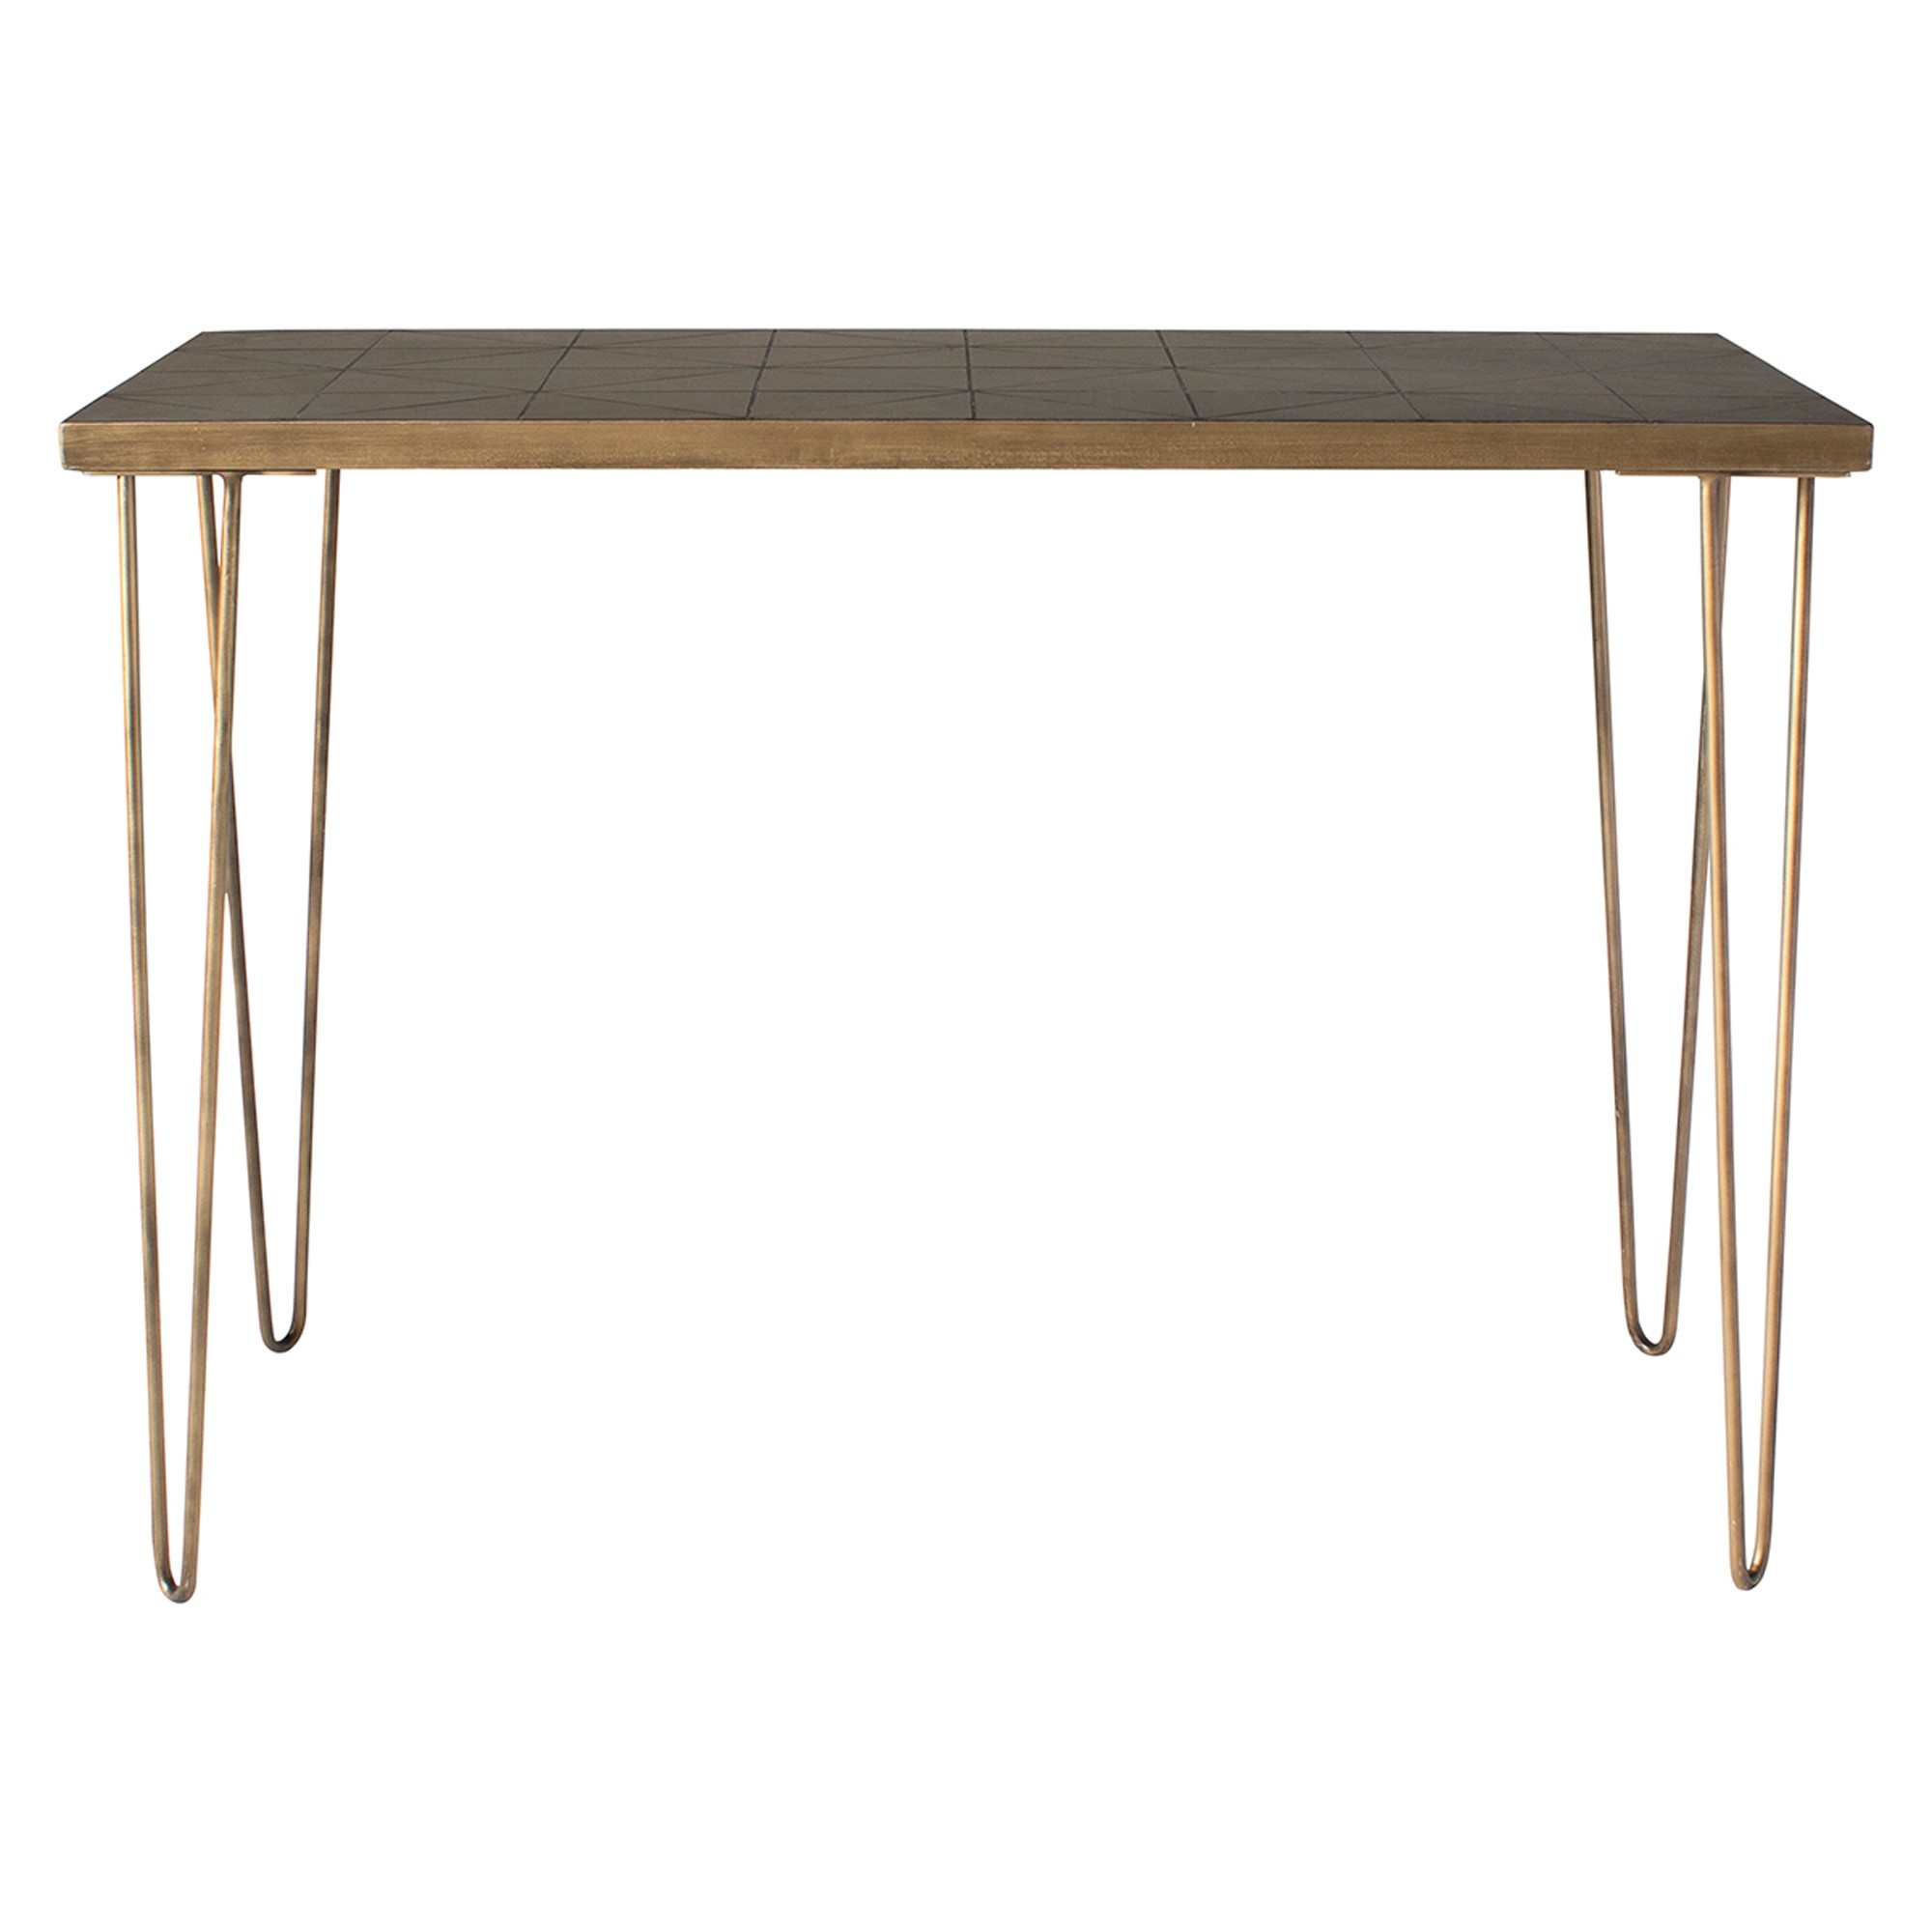 Pompeii Ceramic Tile Top Console Table, 110cm